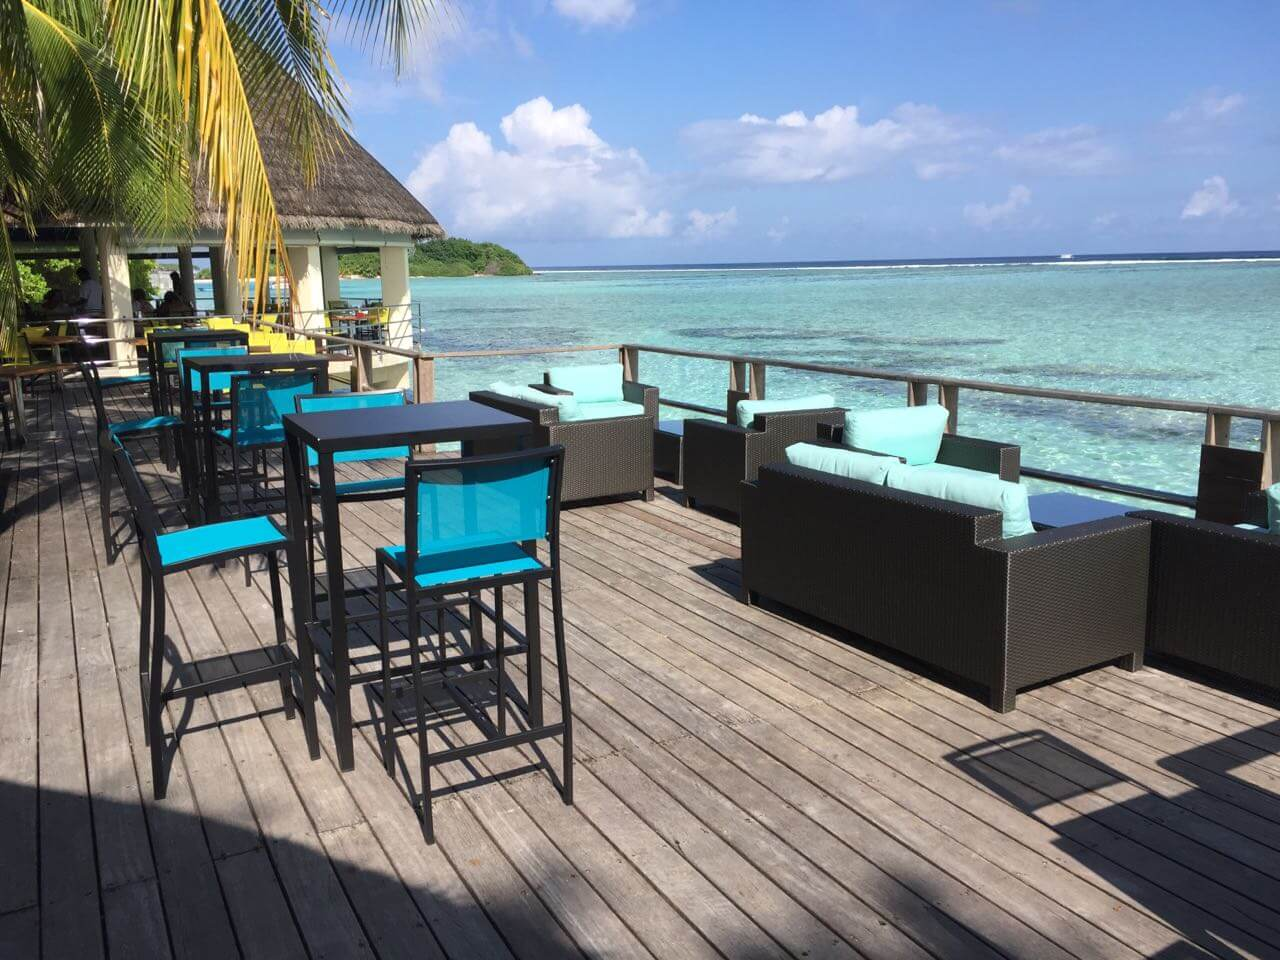 ClubMed-Maldives